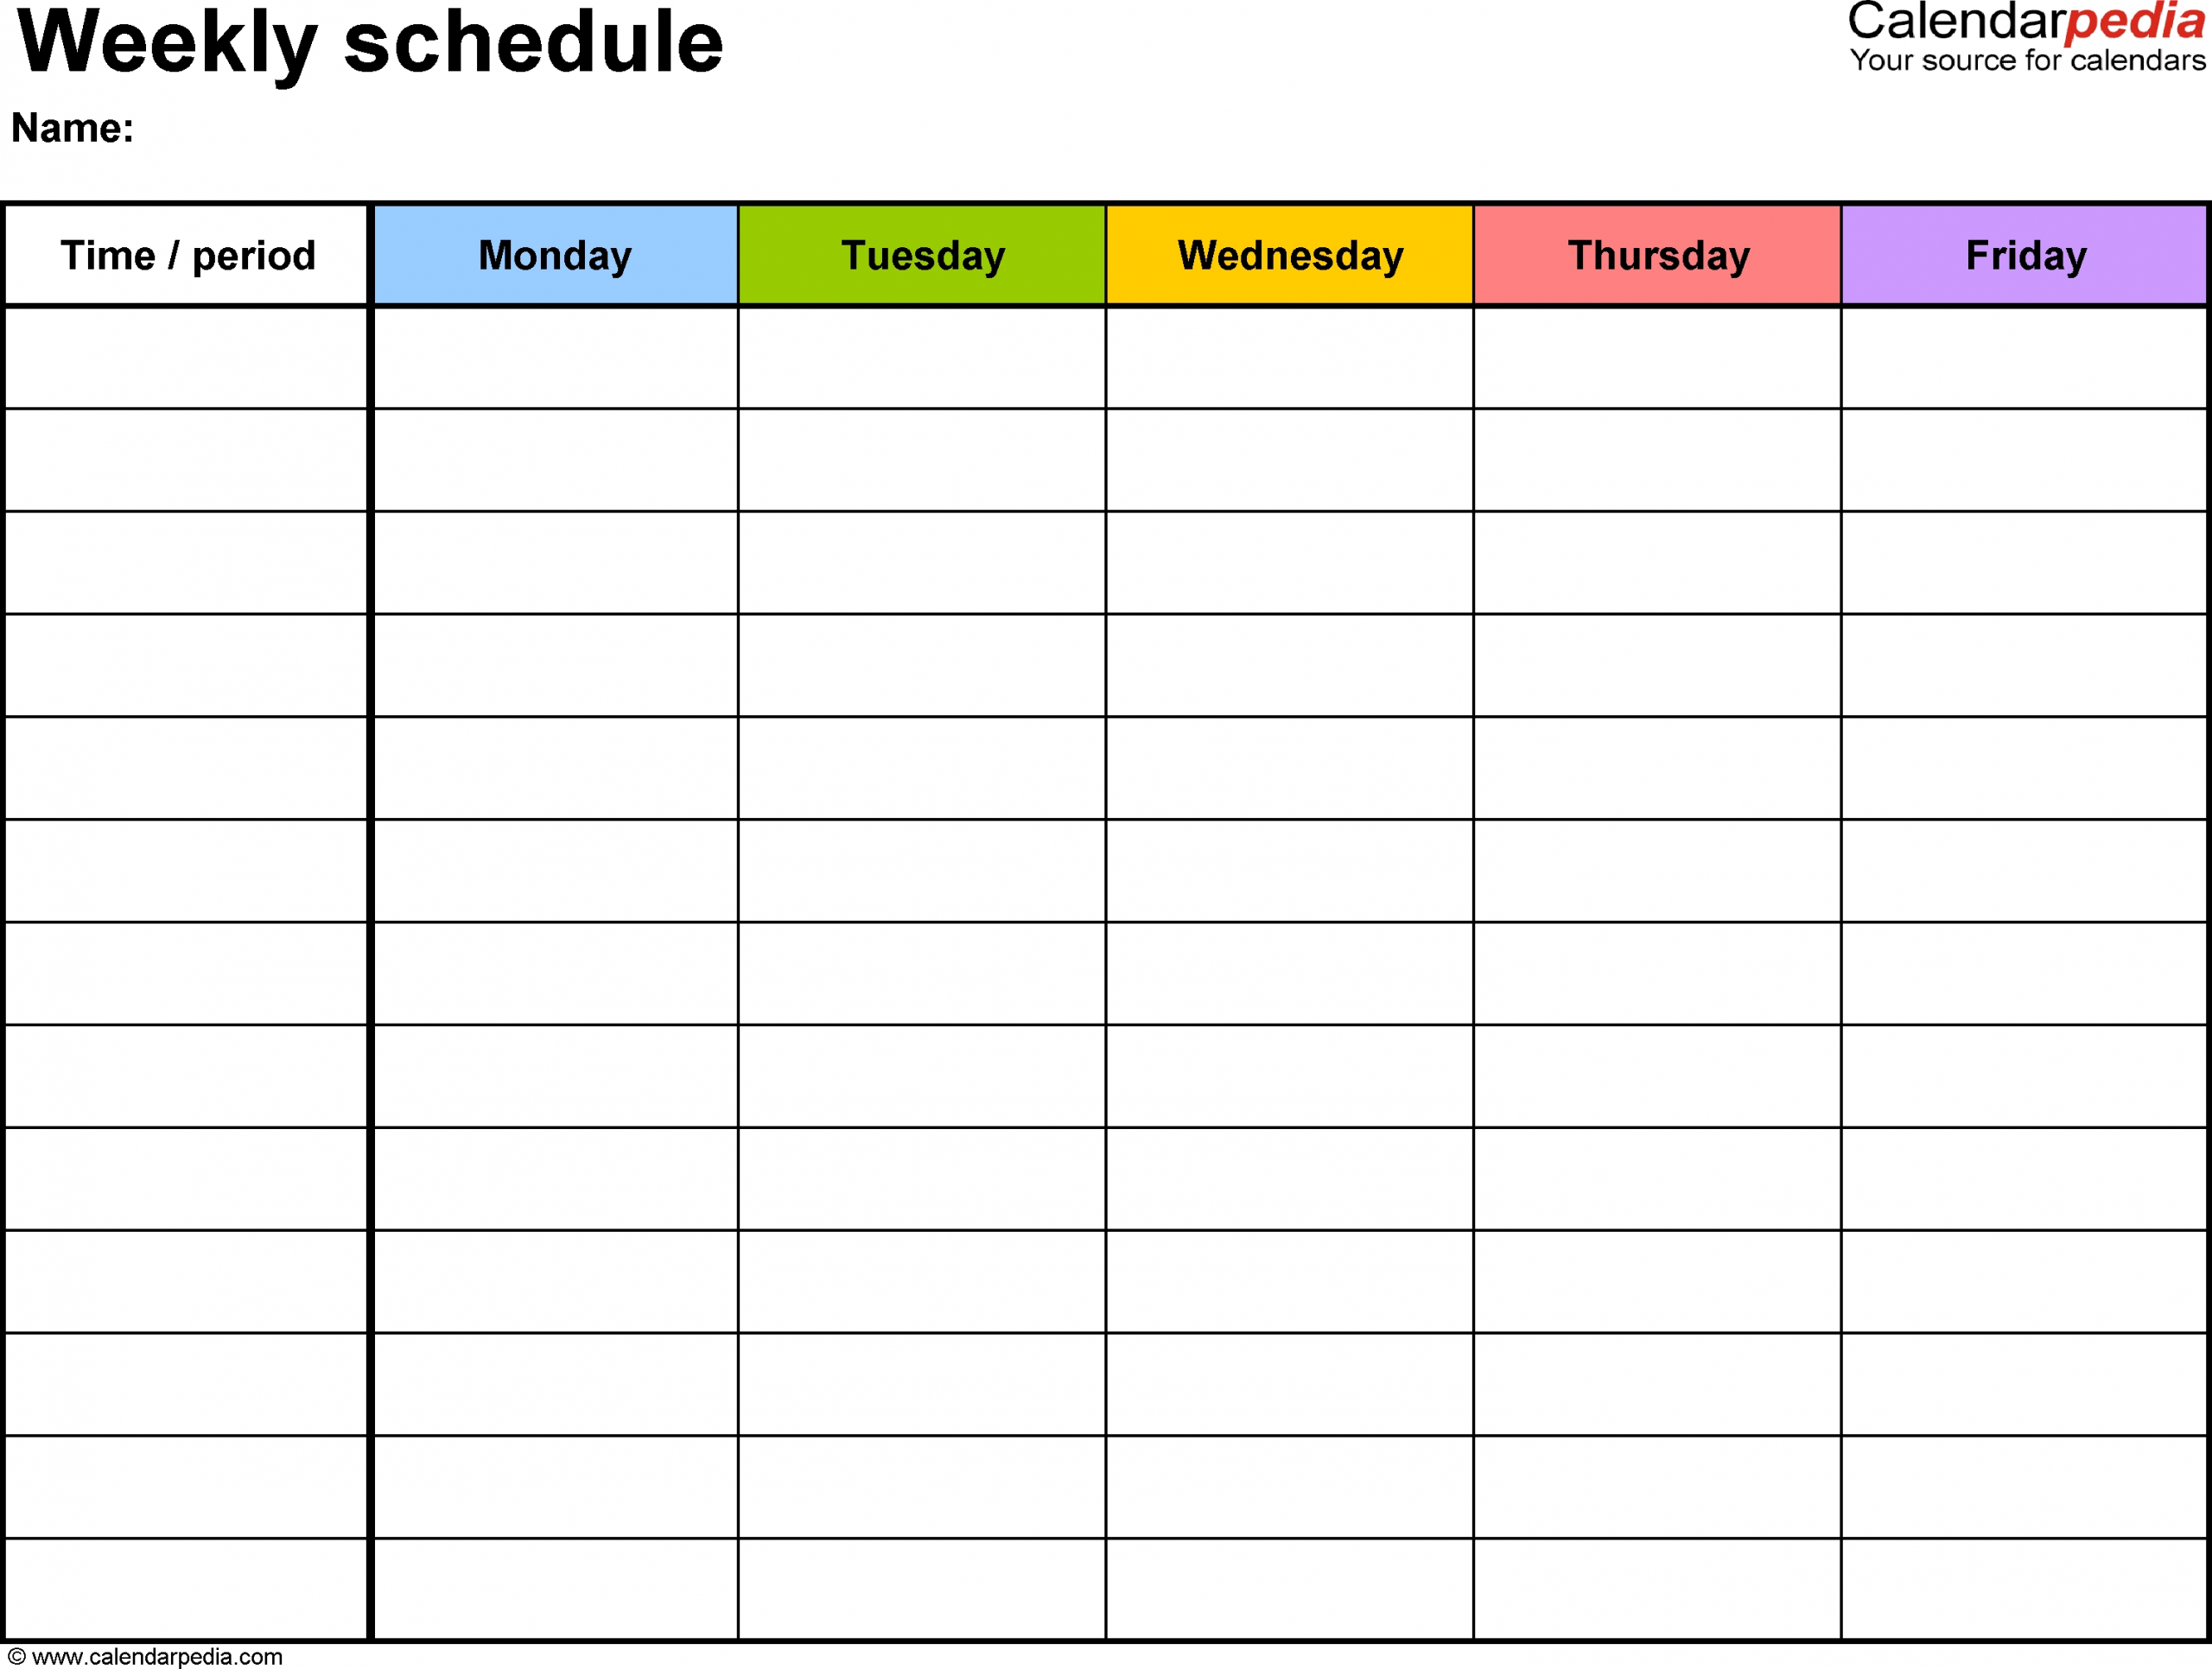 7 Day Calendar Template Excel | Free Calendar Template Example Calendar Template For 7 Days